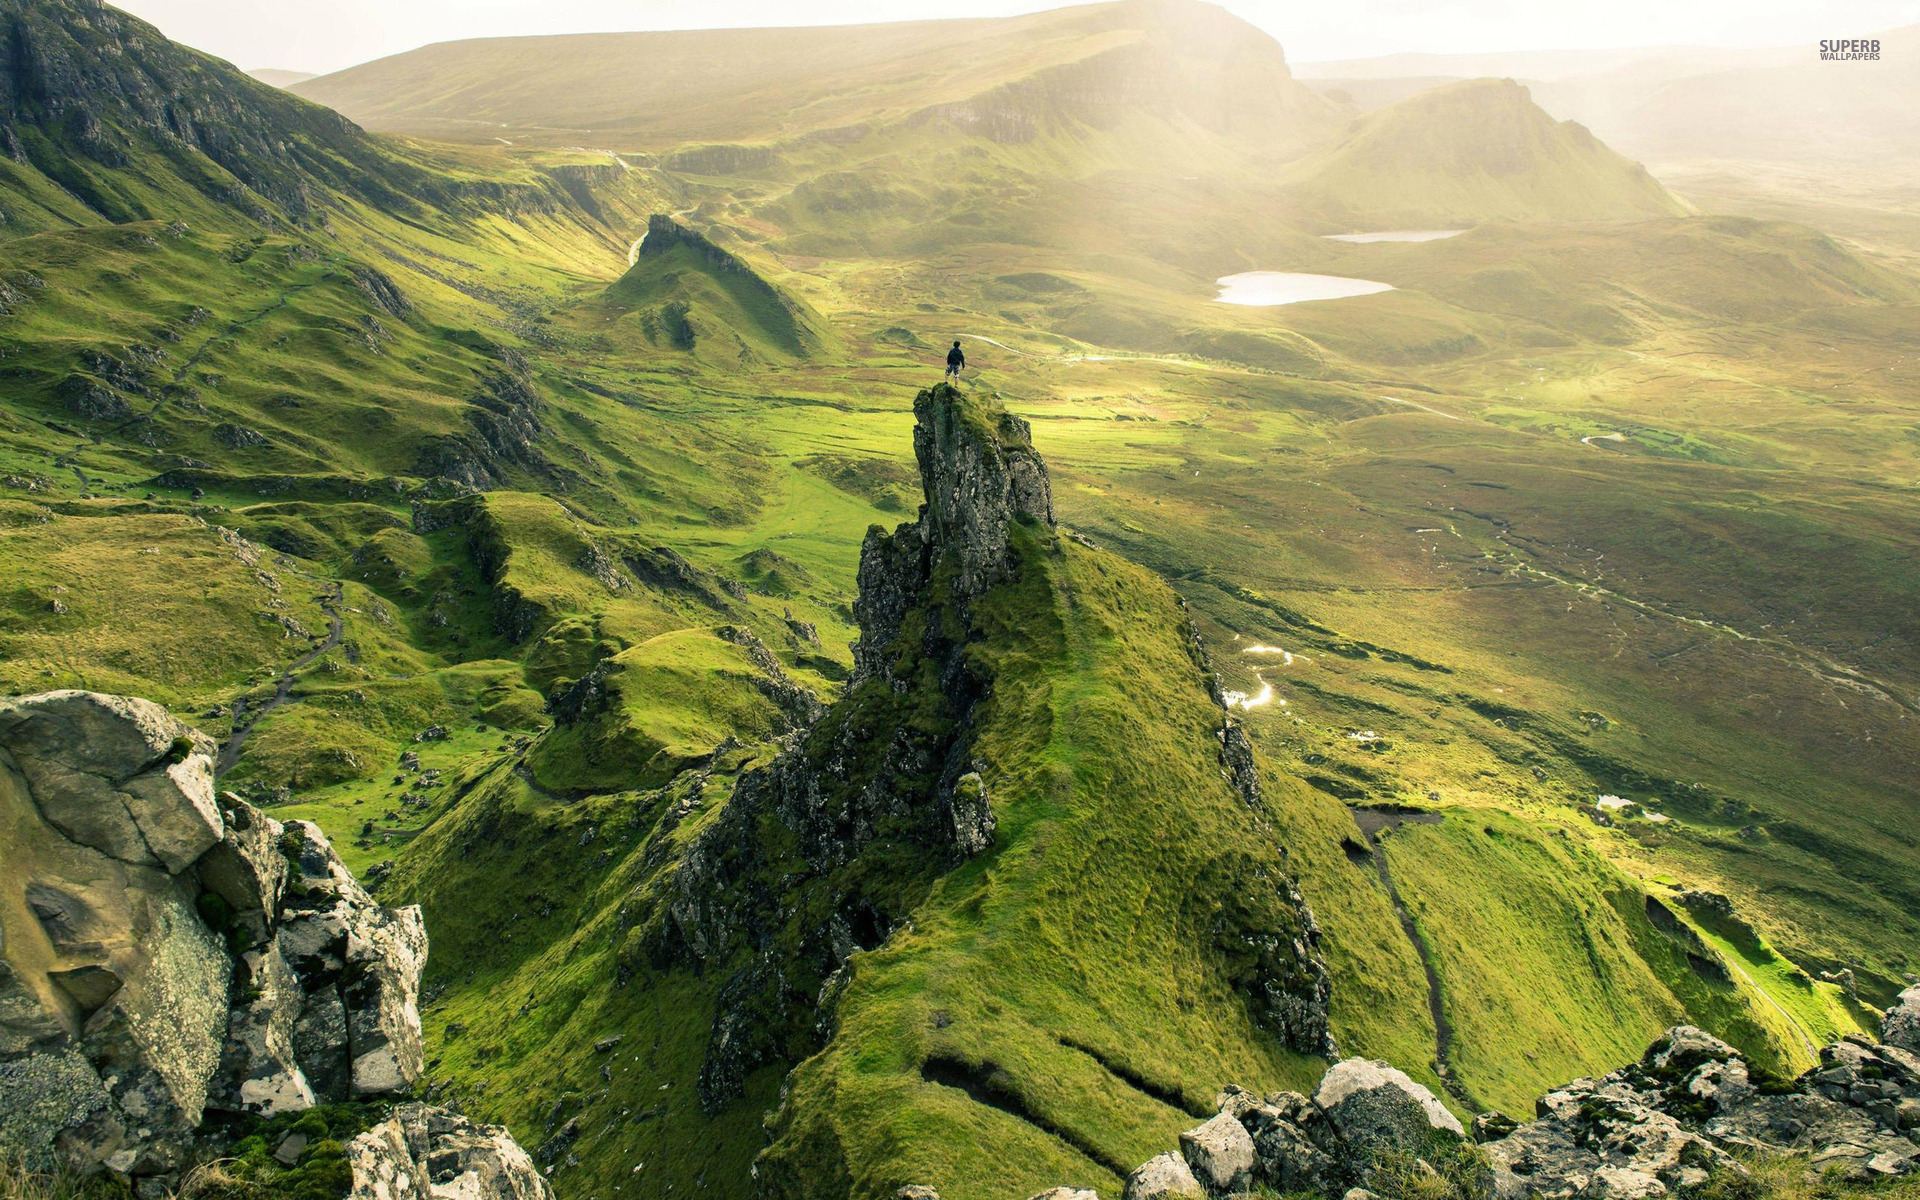 isle of skye peak schottland hintergrundbilder isle of skye peak schottland frei fotos. Black Bedroom Furniture Sets. Home Design Ideas